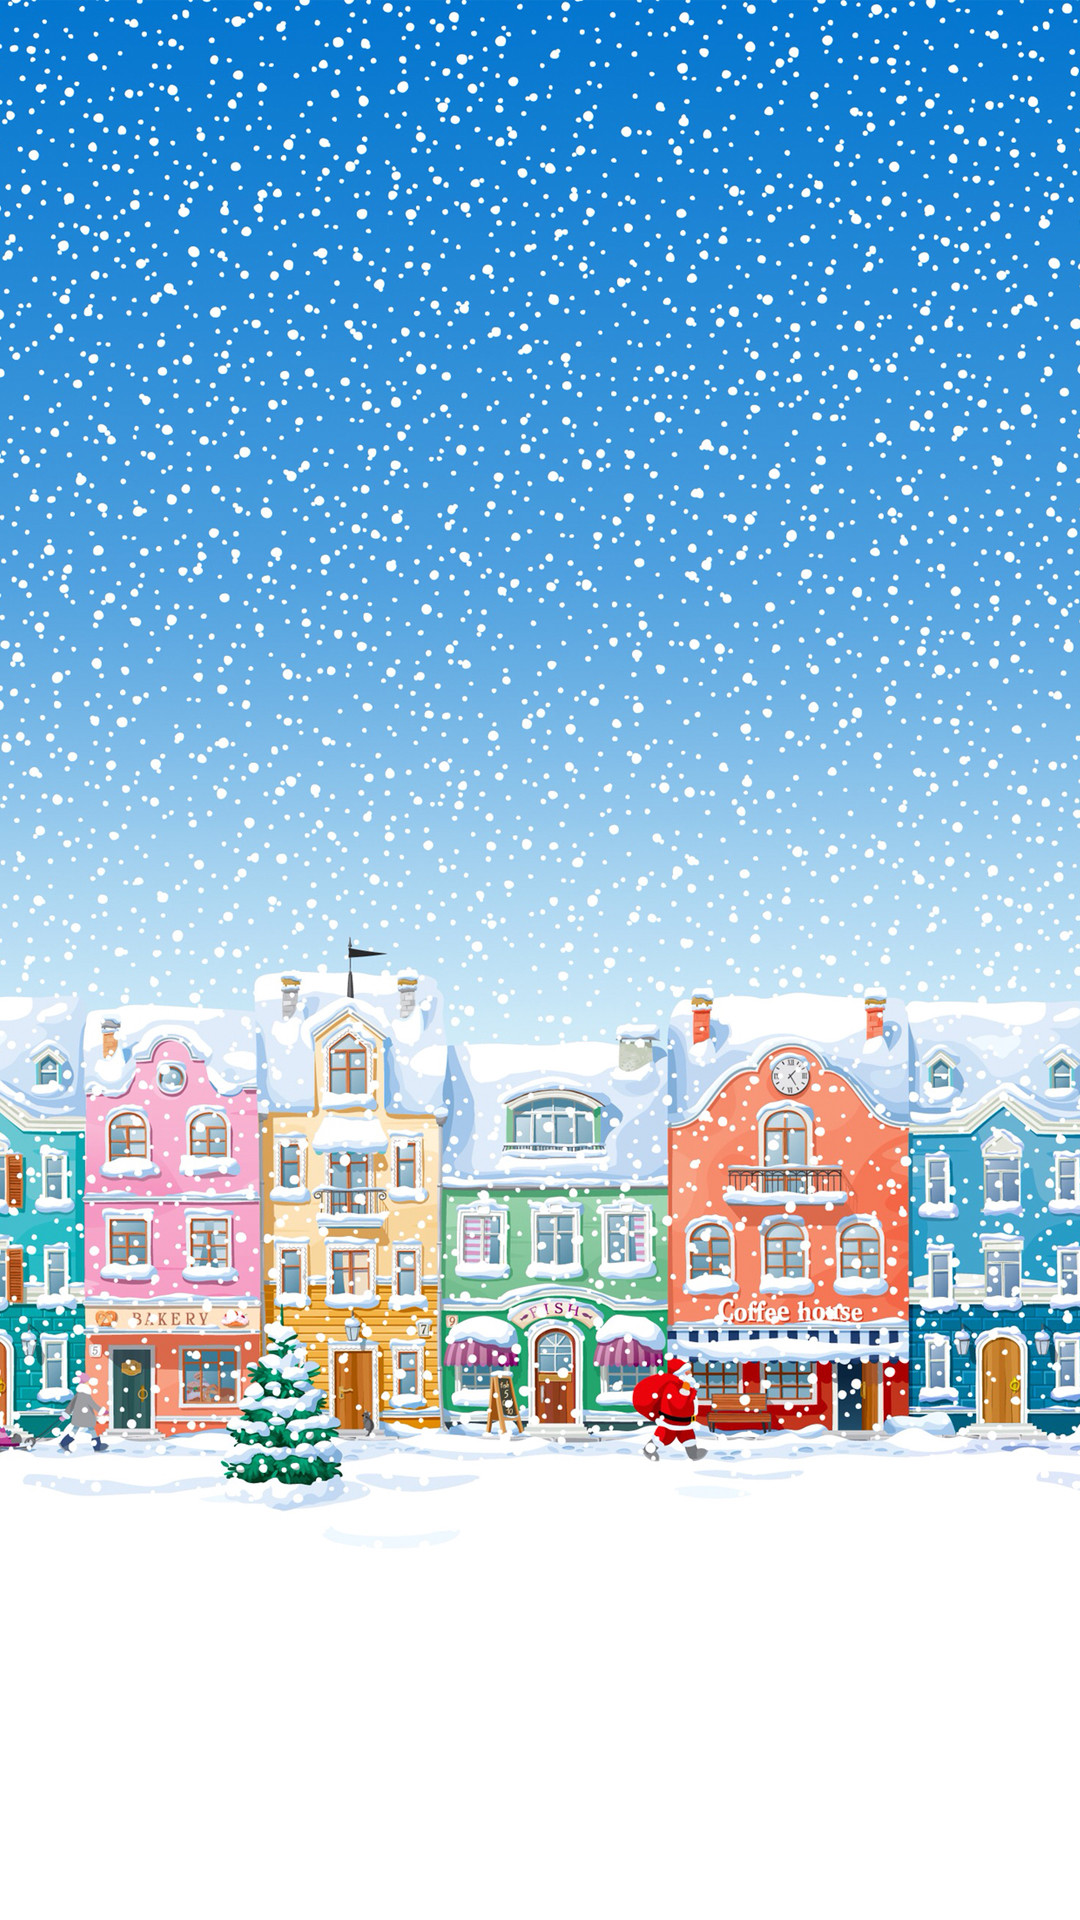 1080x1920 Snowy Town Santa Claus Delivering Christmas Presents iPhone 6 wallpaper